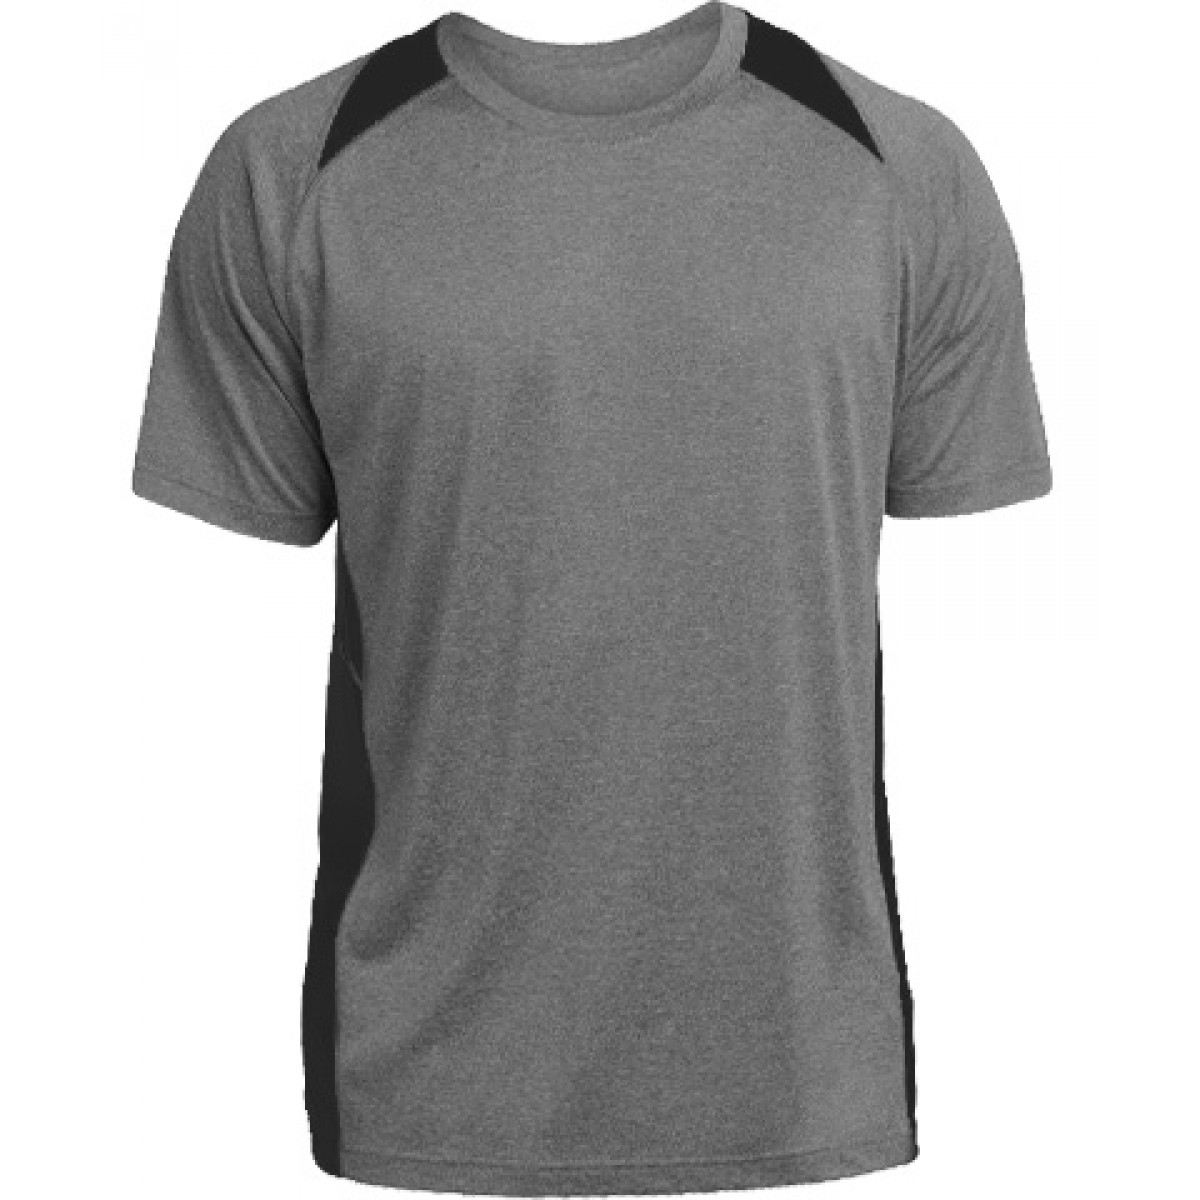 Heather Colorblock Contender™ Tee-Gray/Black-XL